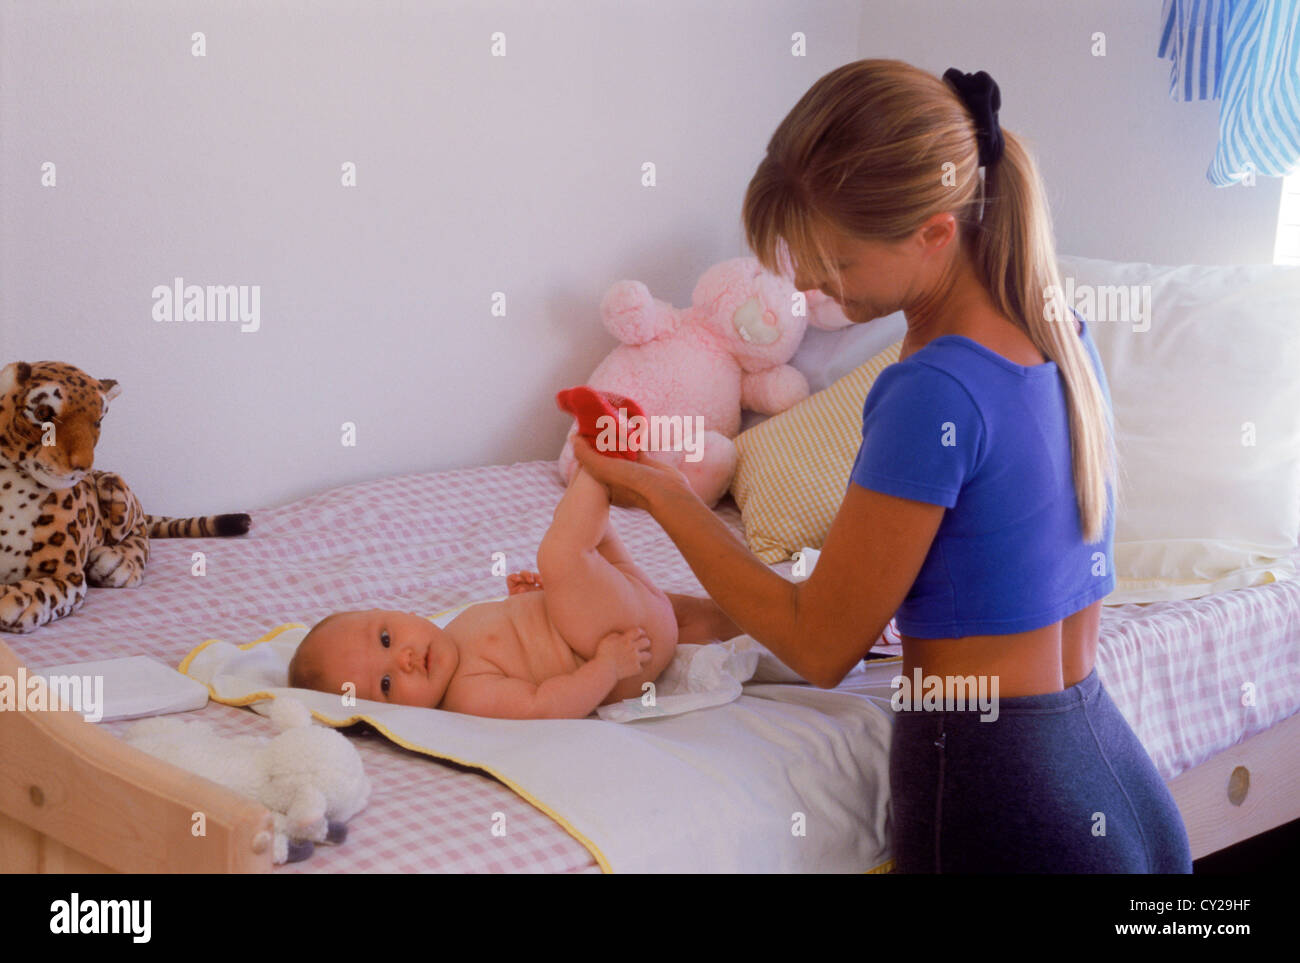 Adult baby changing diaper picture